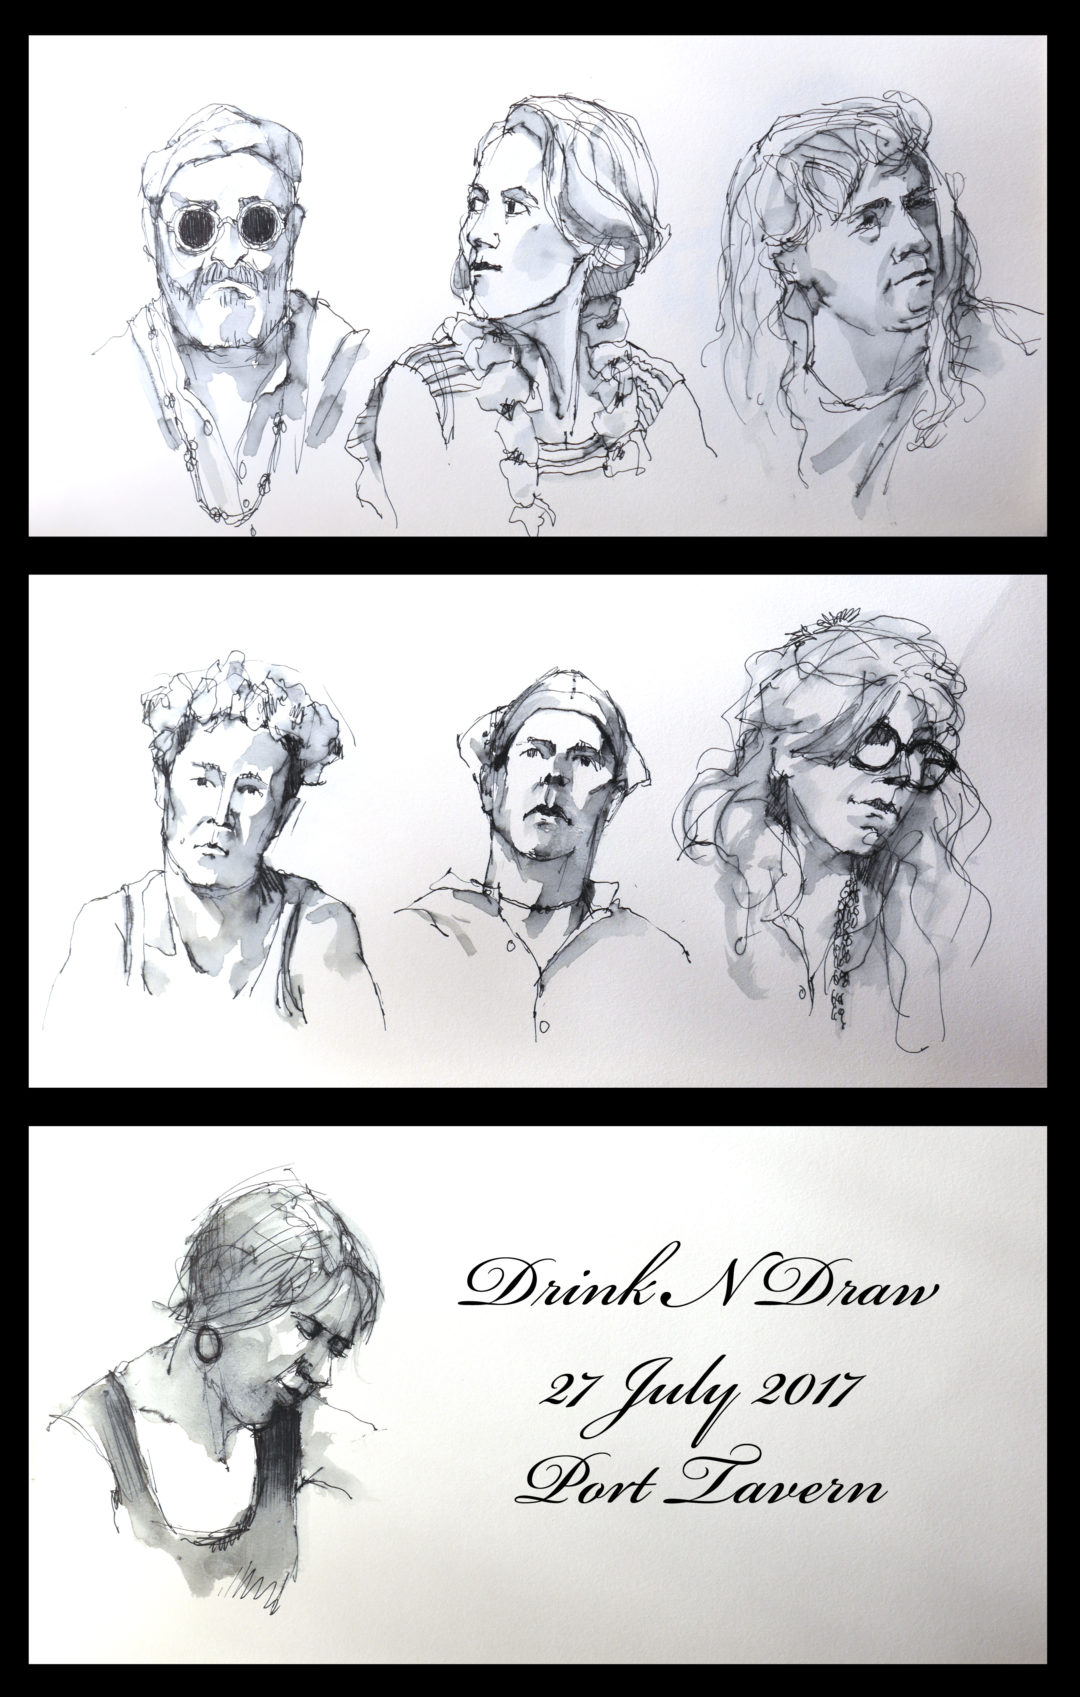 Drink N Draw Port Tavern 07/27/17